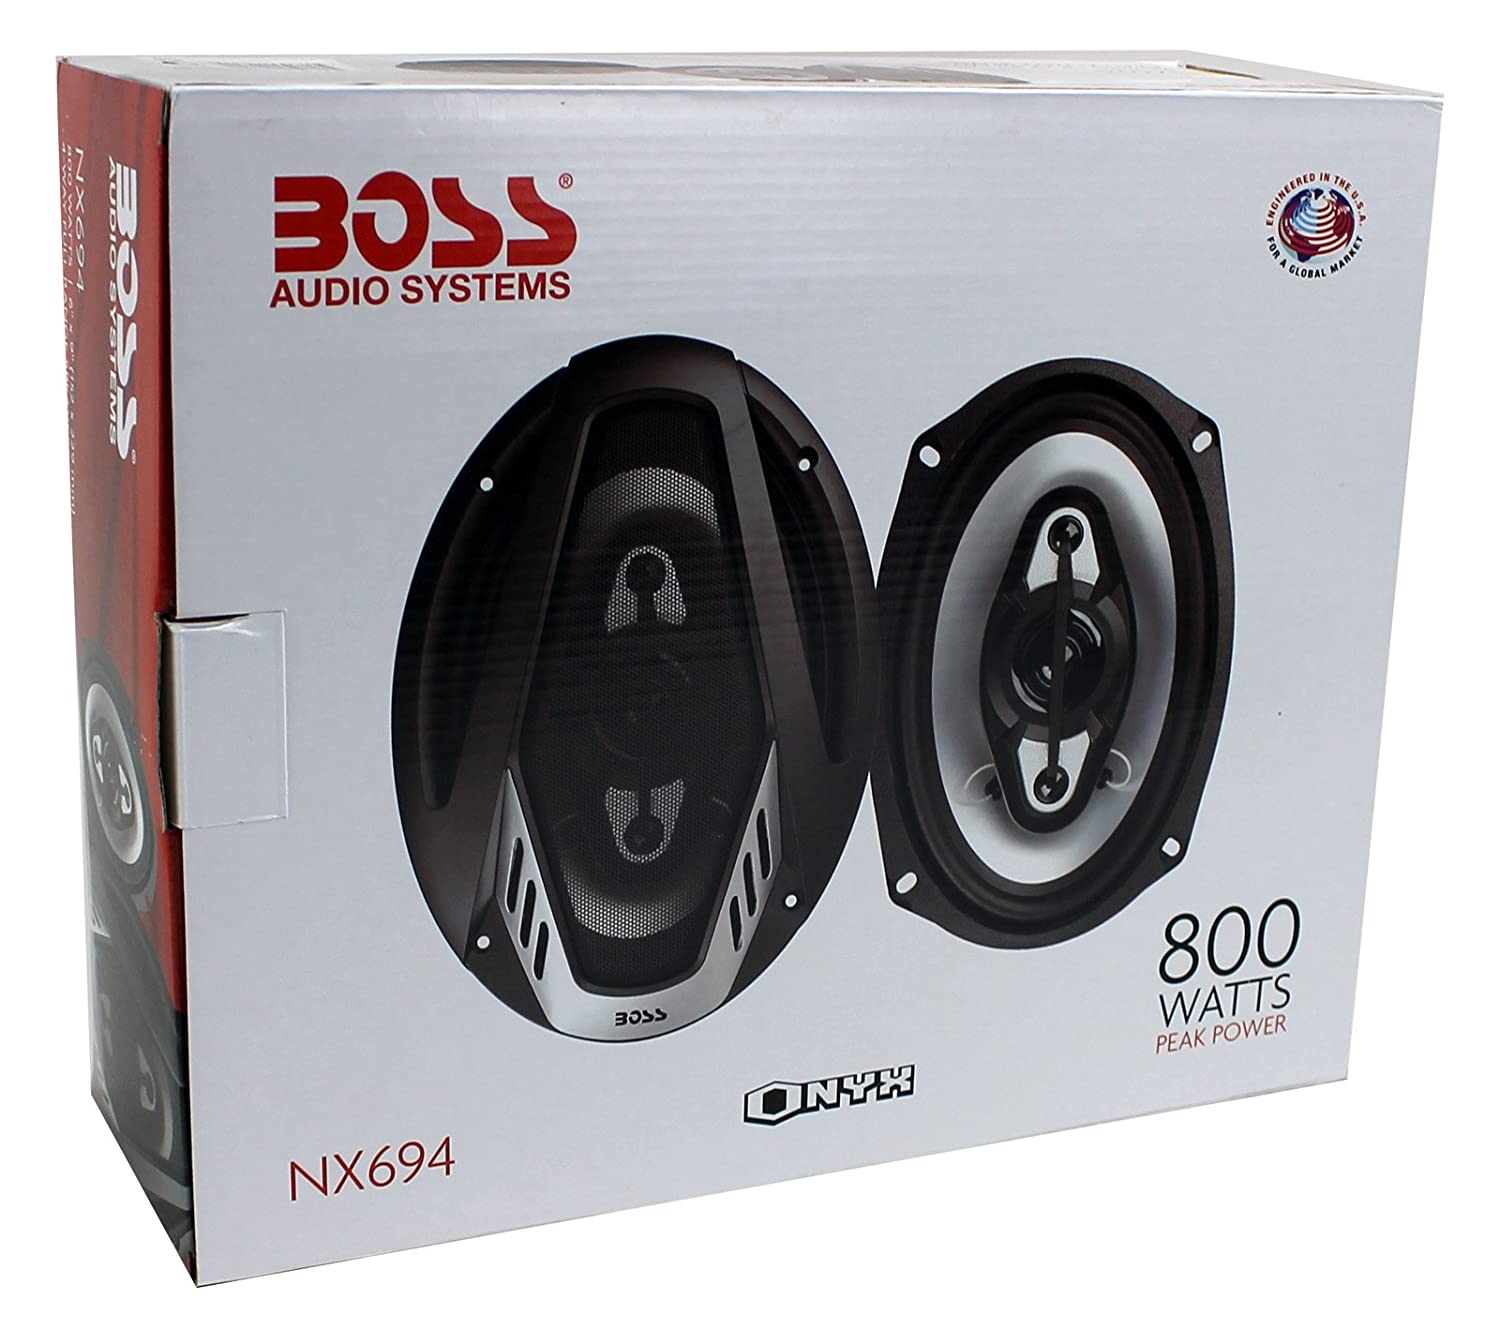 4 New Boss Nx694 6x9 1600w Onyx Way Car Audio Kit2 8 Gauge Complete Amplifier Wiring Kit Pair Vminnovations Speakers 1600 Watts 2 Electronics